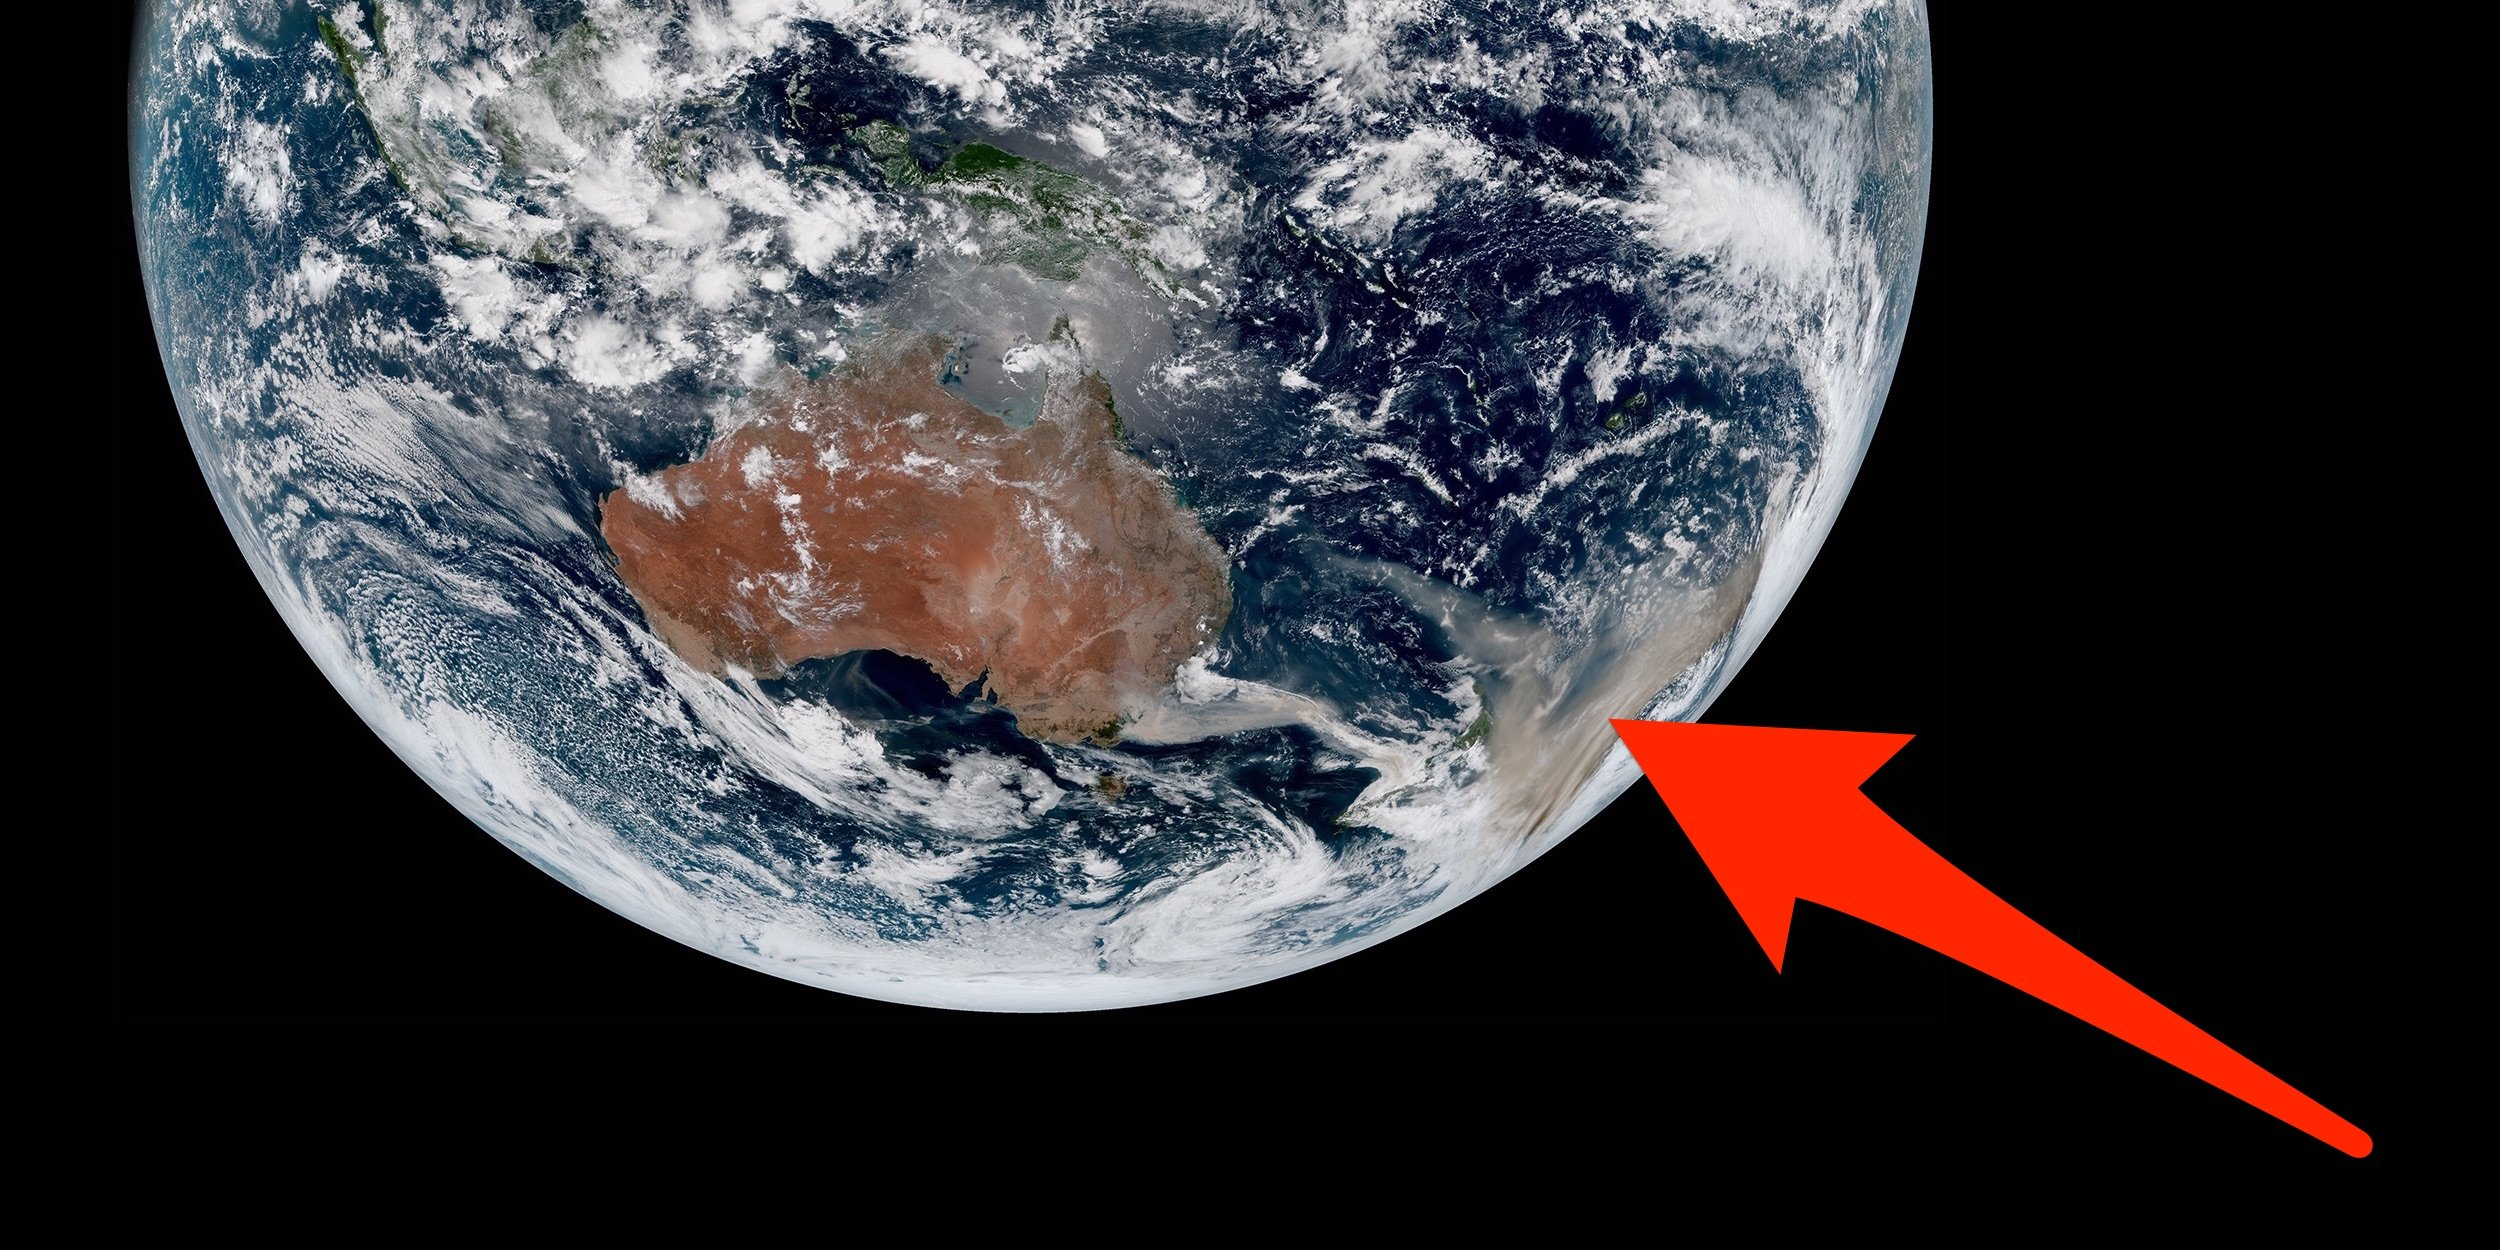 RAMMB/CIRA/CSU; Business Insider The Himawari-8 satellite's view of the Australian brushfires and smoke clouds on January 2, 2020.